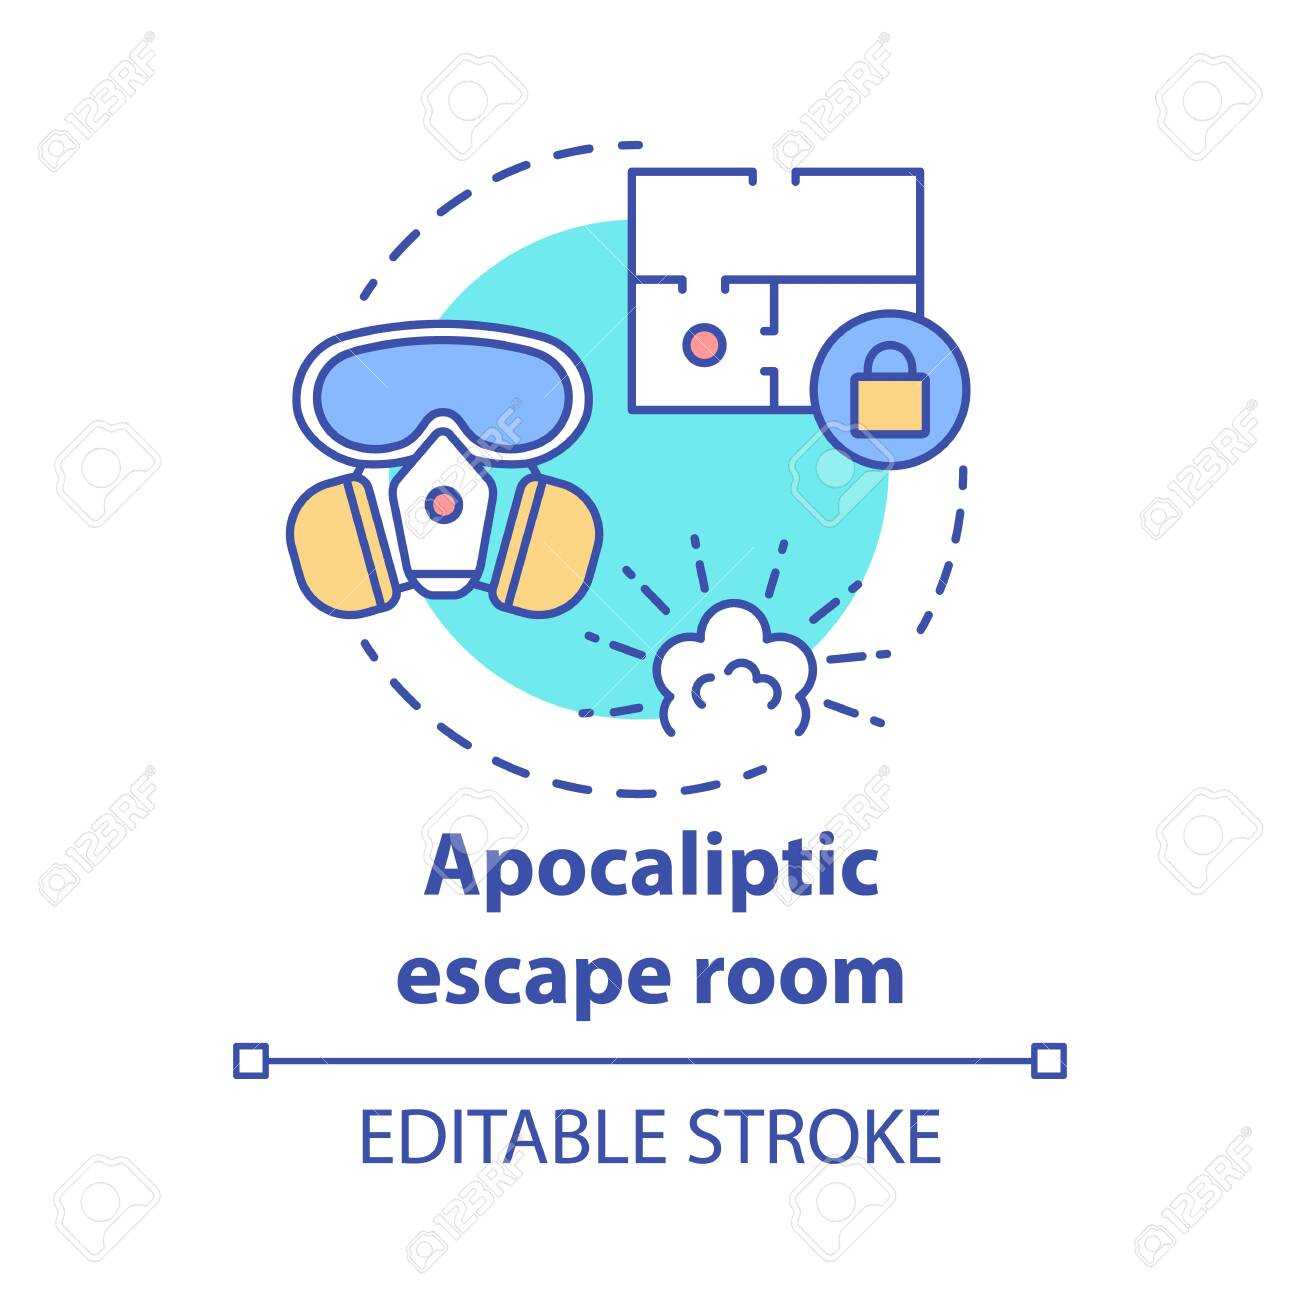 Apocalyptic Escape Room Concept Icon Disaster Theme Quest Idea Royalty Free Cliparts Vectors And Stock Illustration Image 132919336